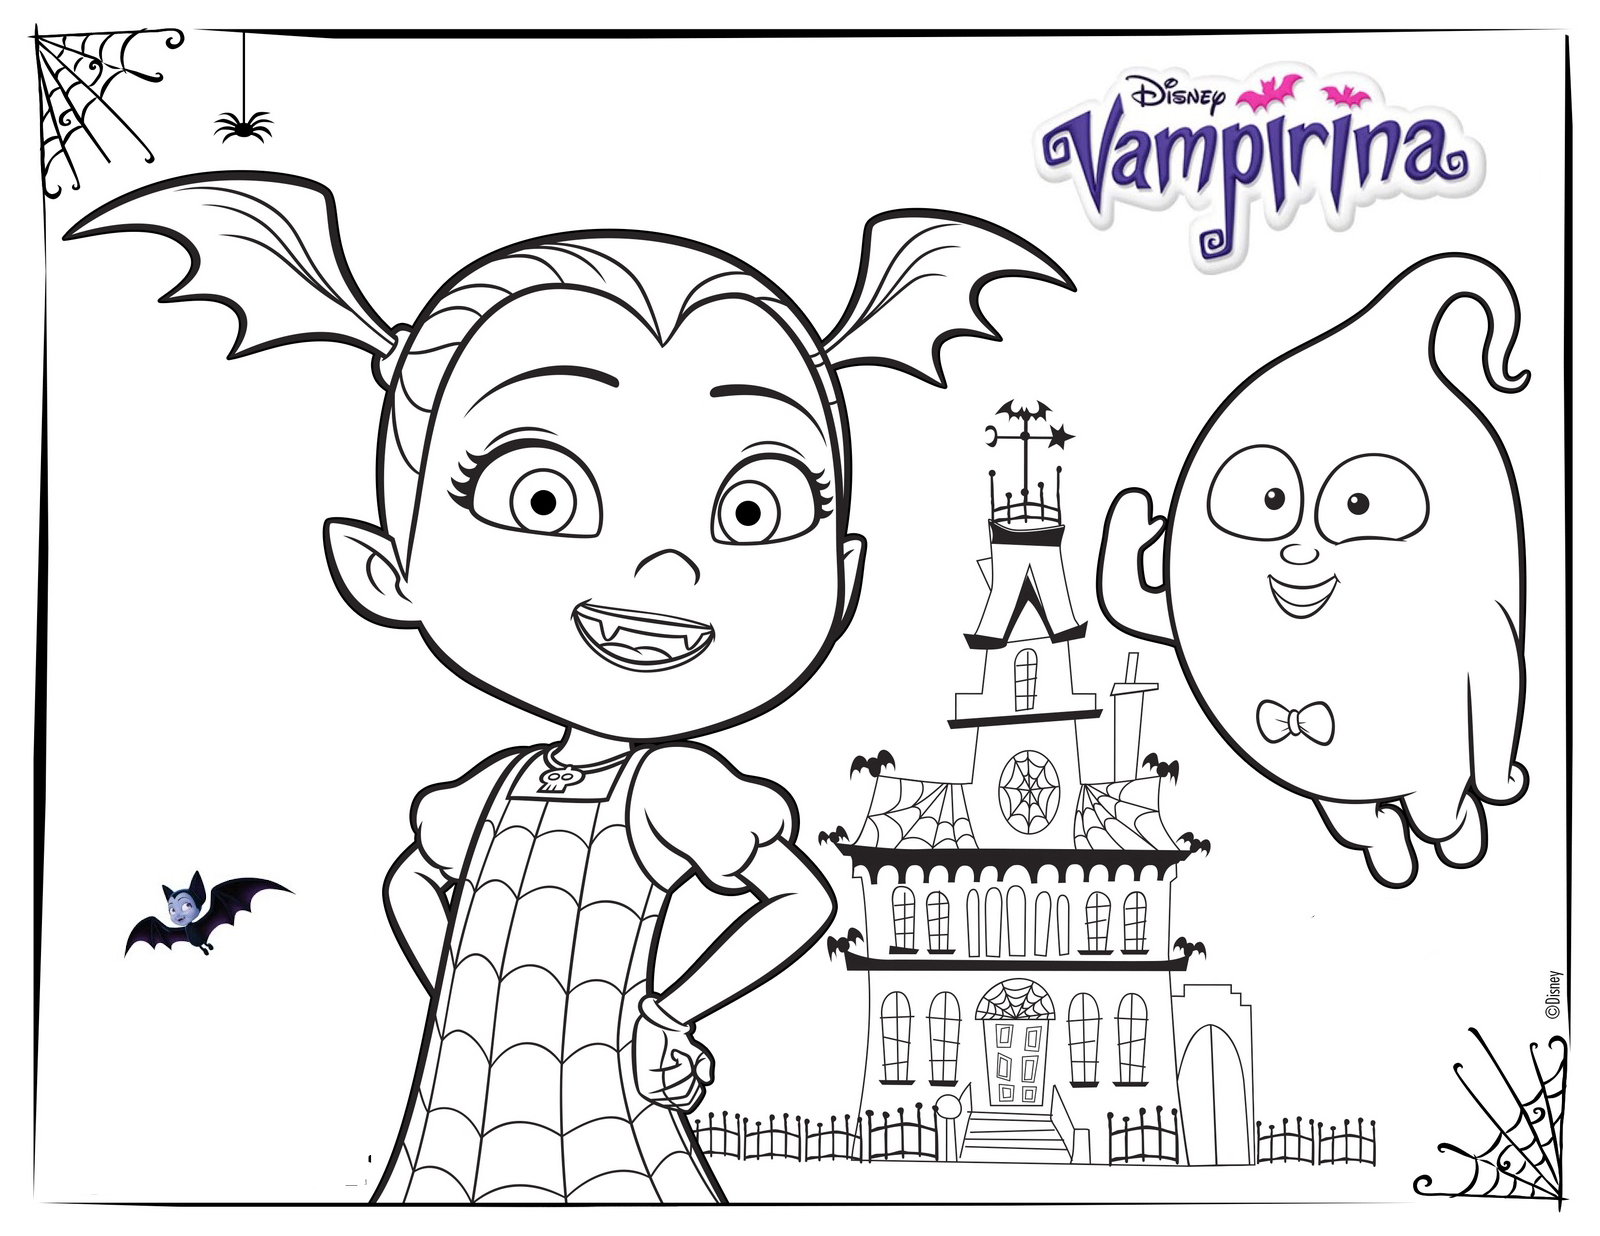 Vampirina and House Coloring Pages